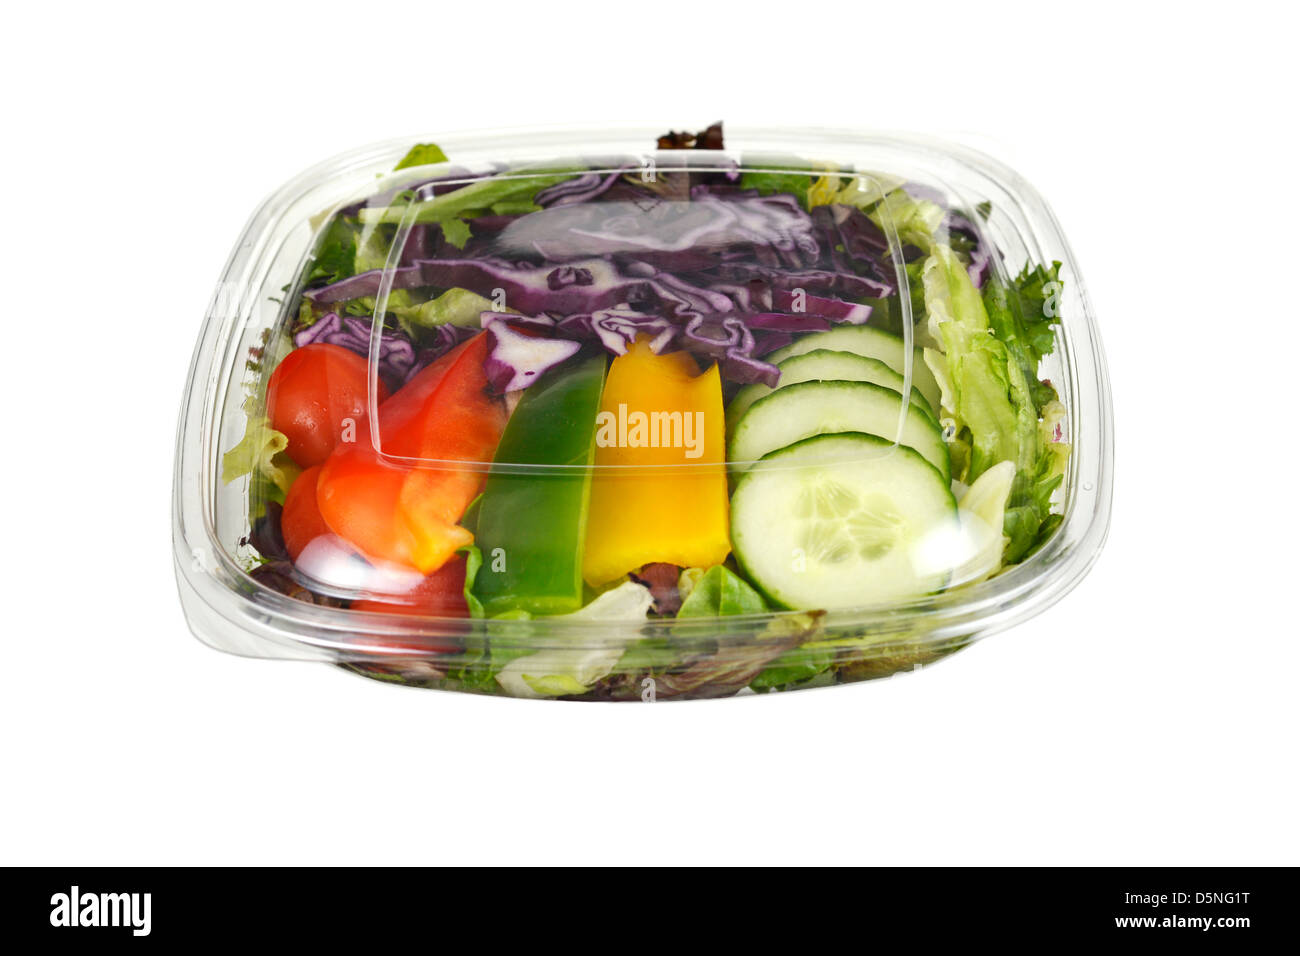 Des salades, paniers-salade en plastique Photo Stock